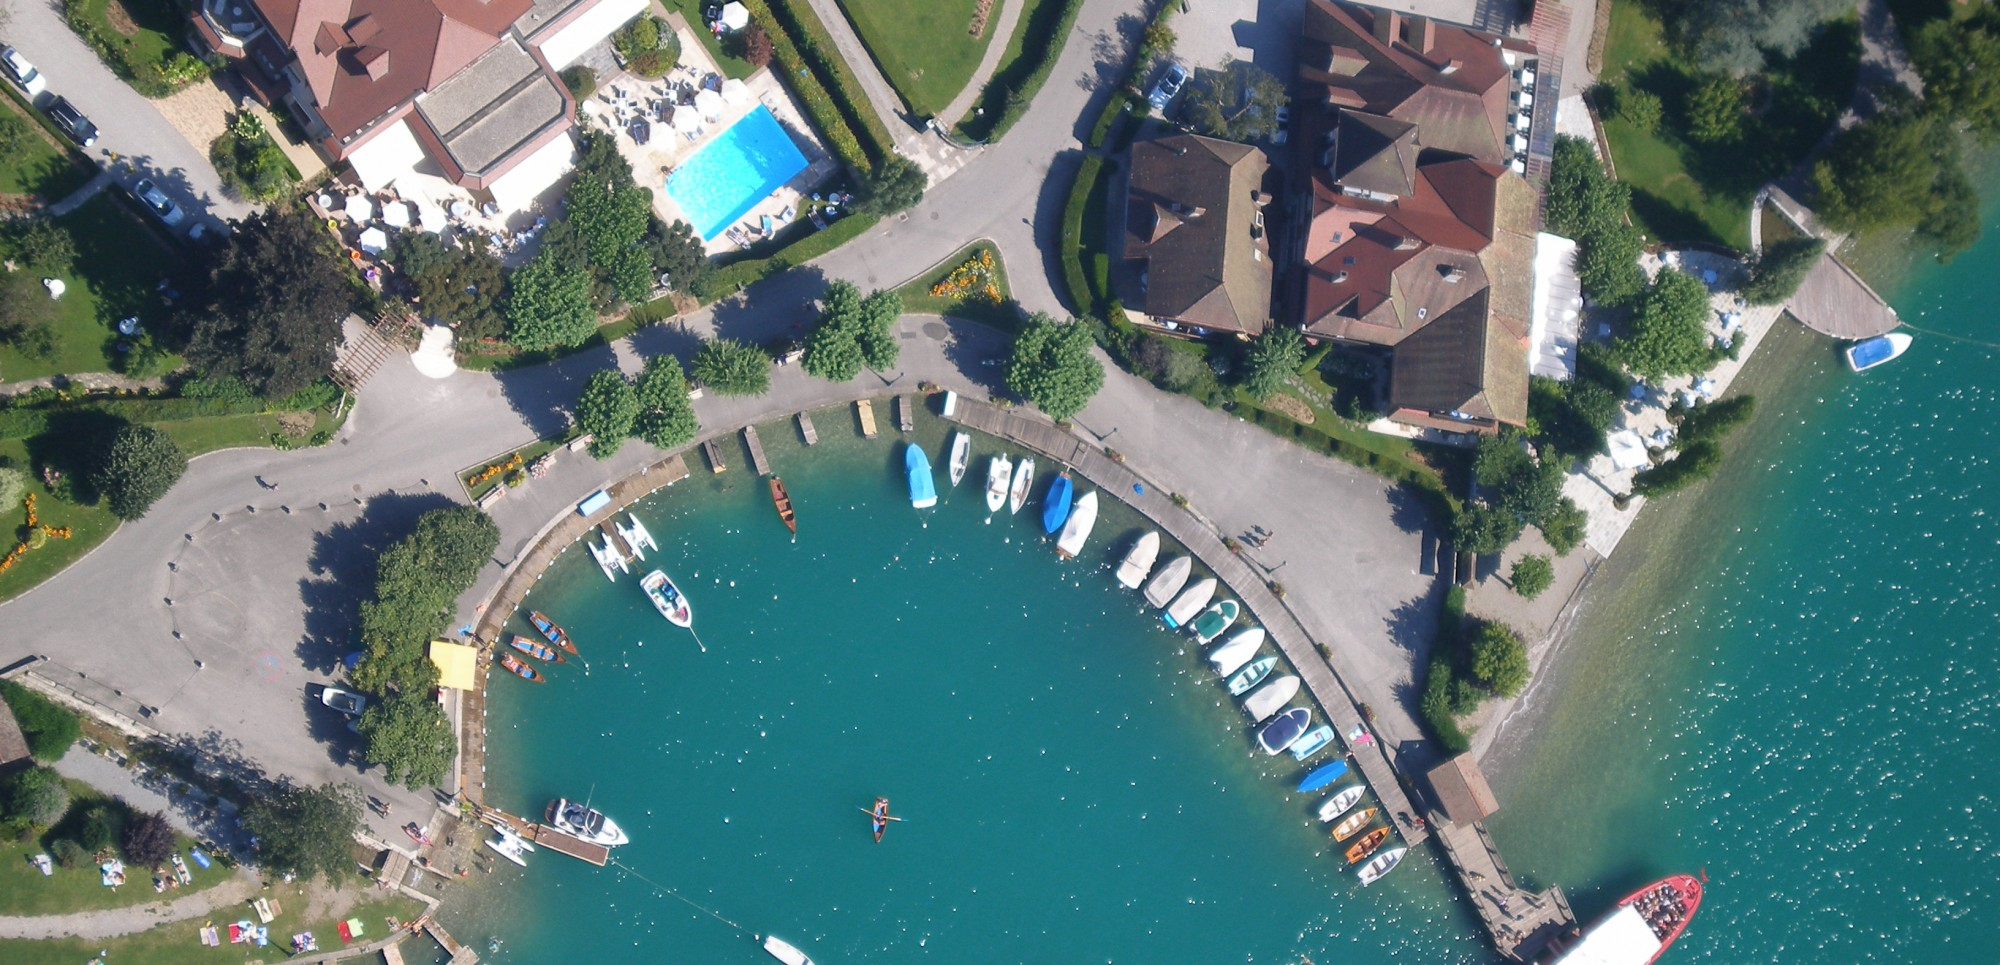 Looking down on the little lakeside village of Talloires